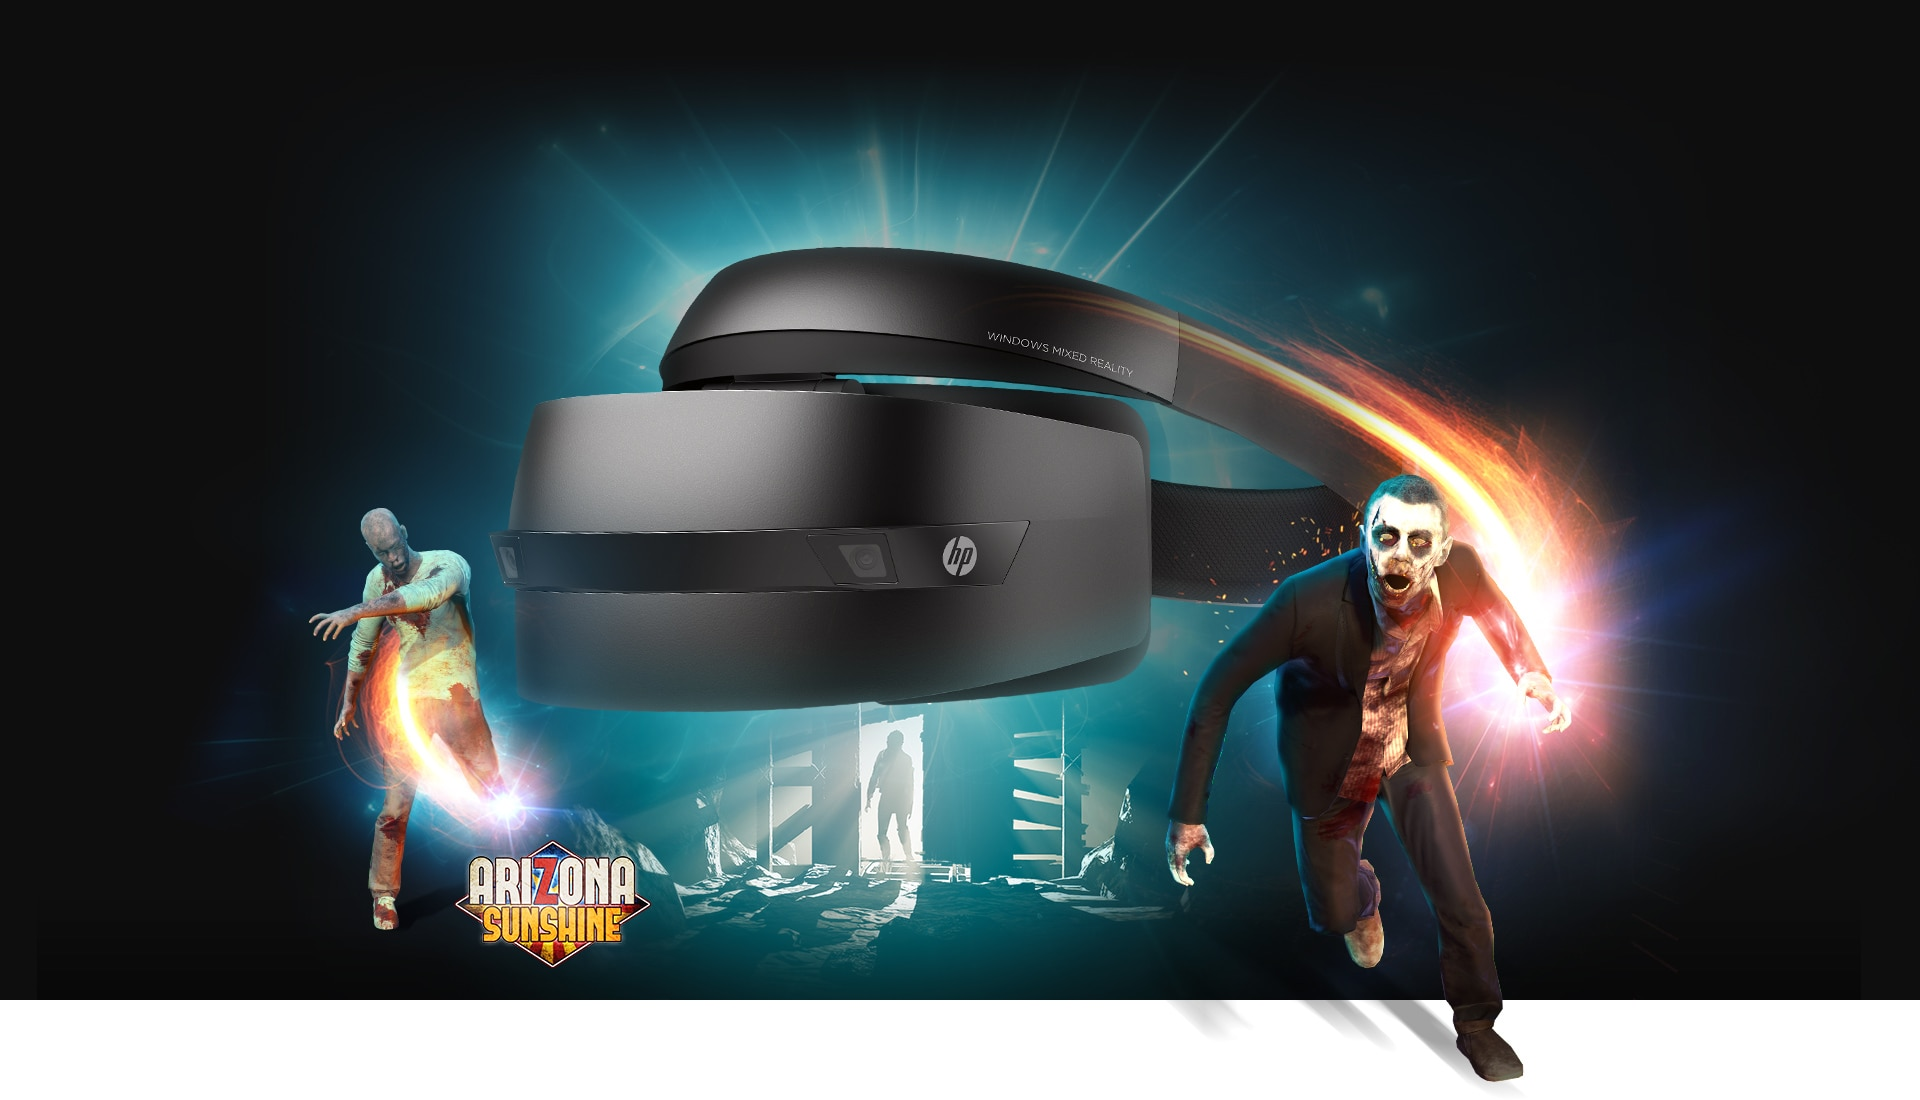 HP Windows Mixed Reality Headset immersive puting